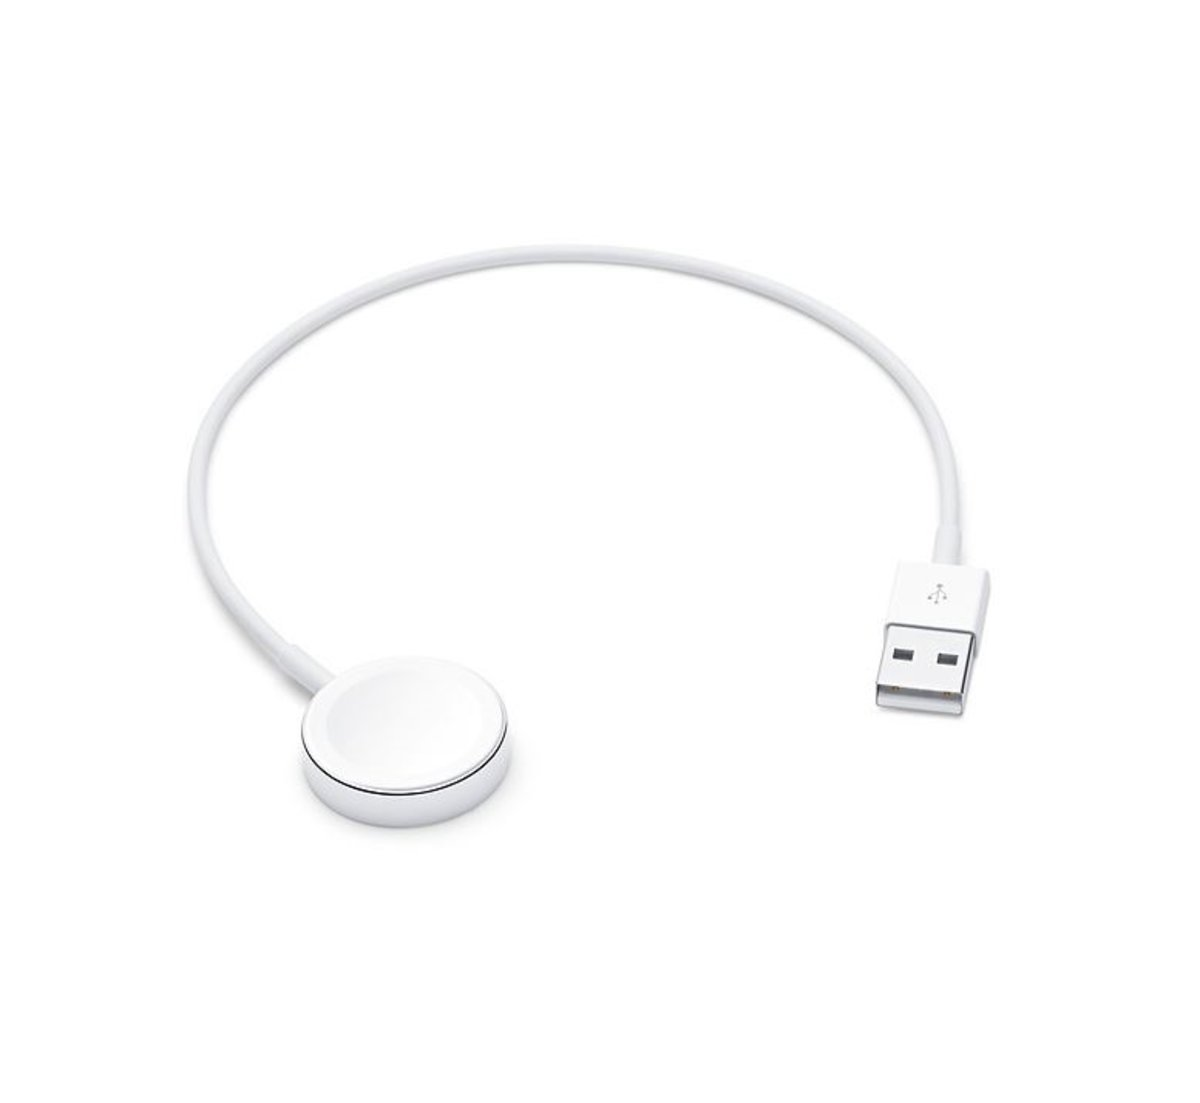 Apple watch Magnetic charging cable 0.3m A1923 MU9J2AM/A